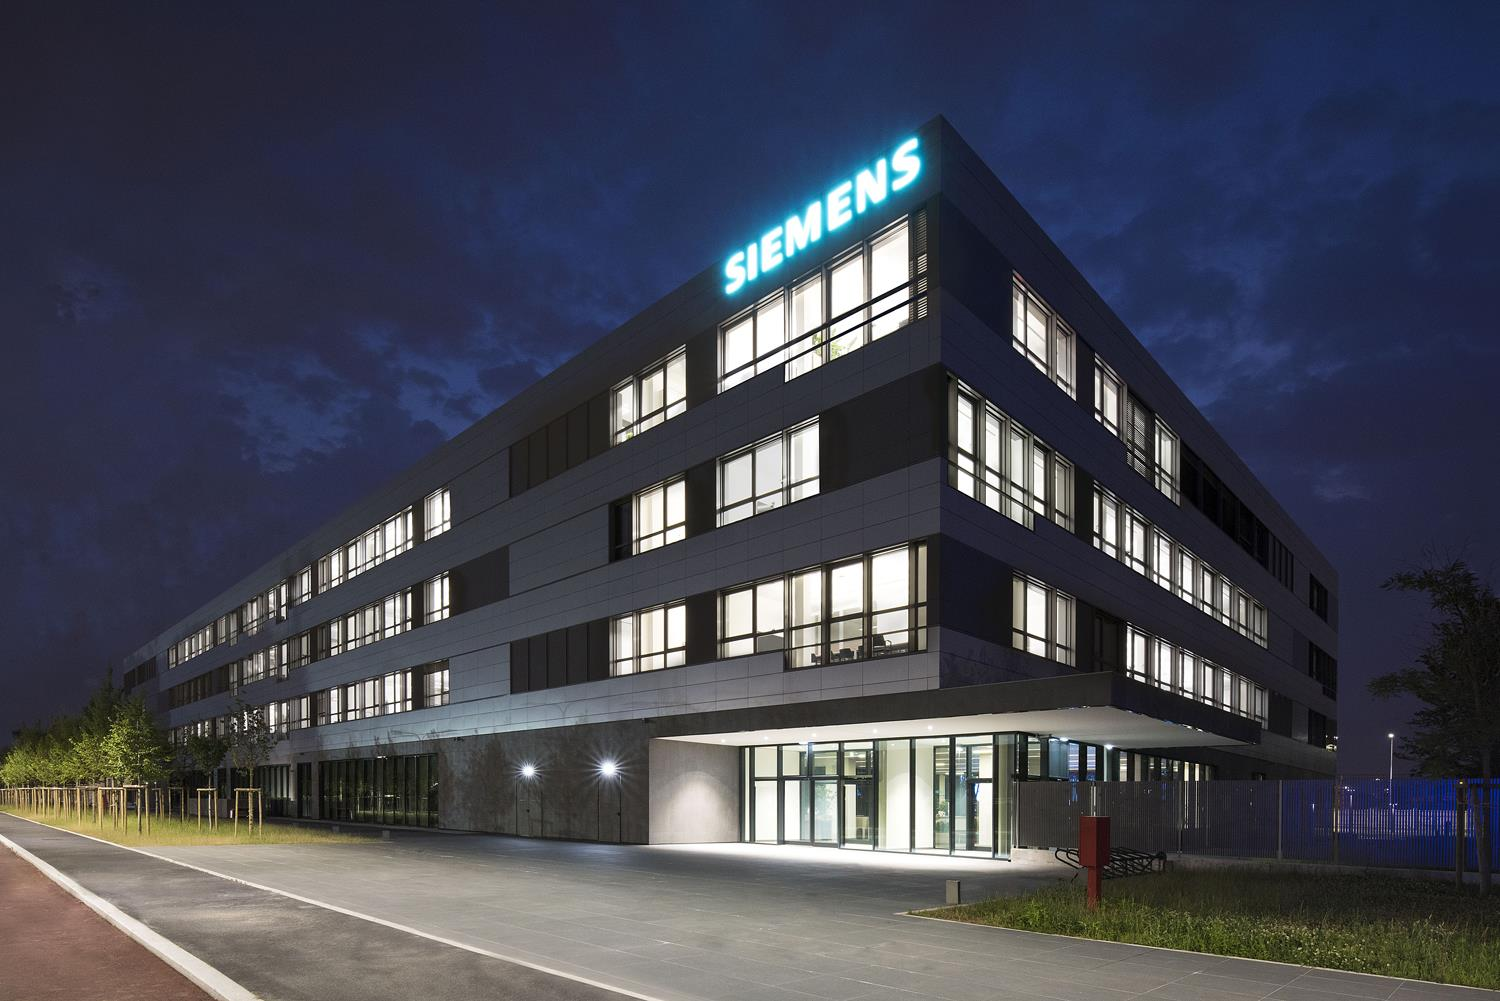 Siemens Headquarter: Photo 14